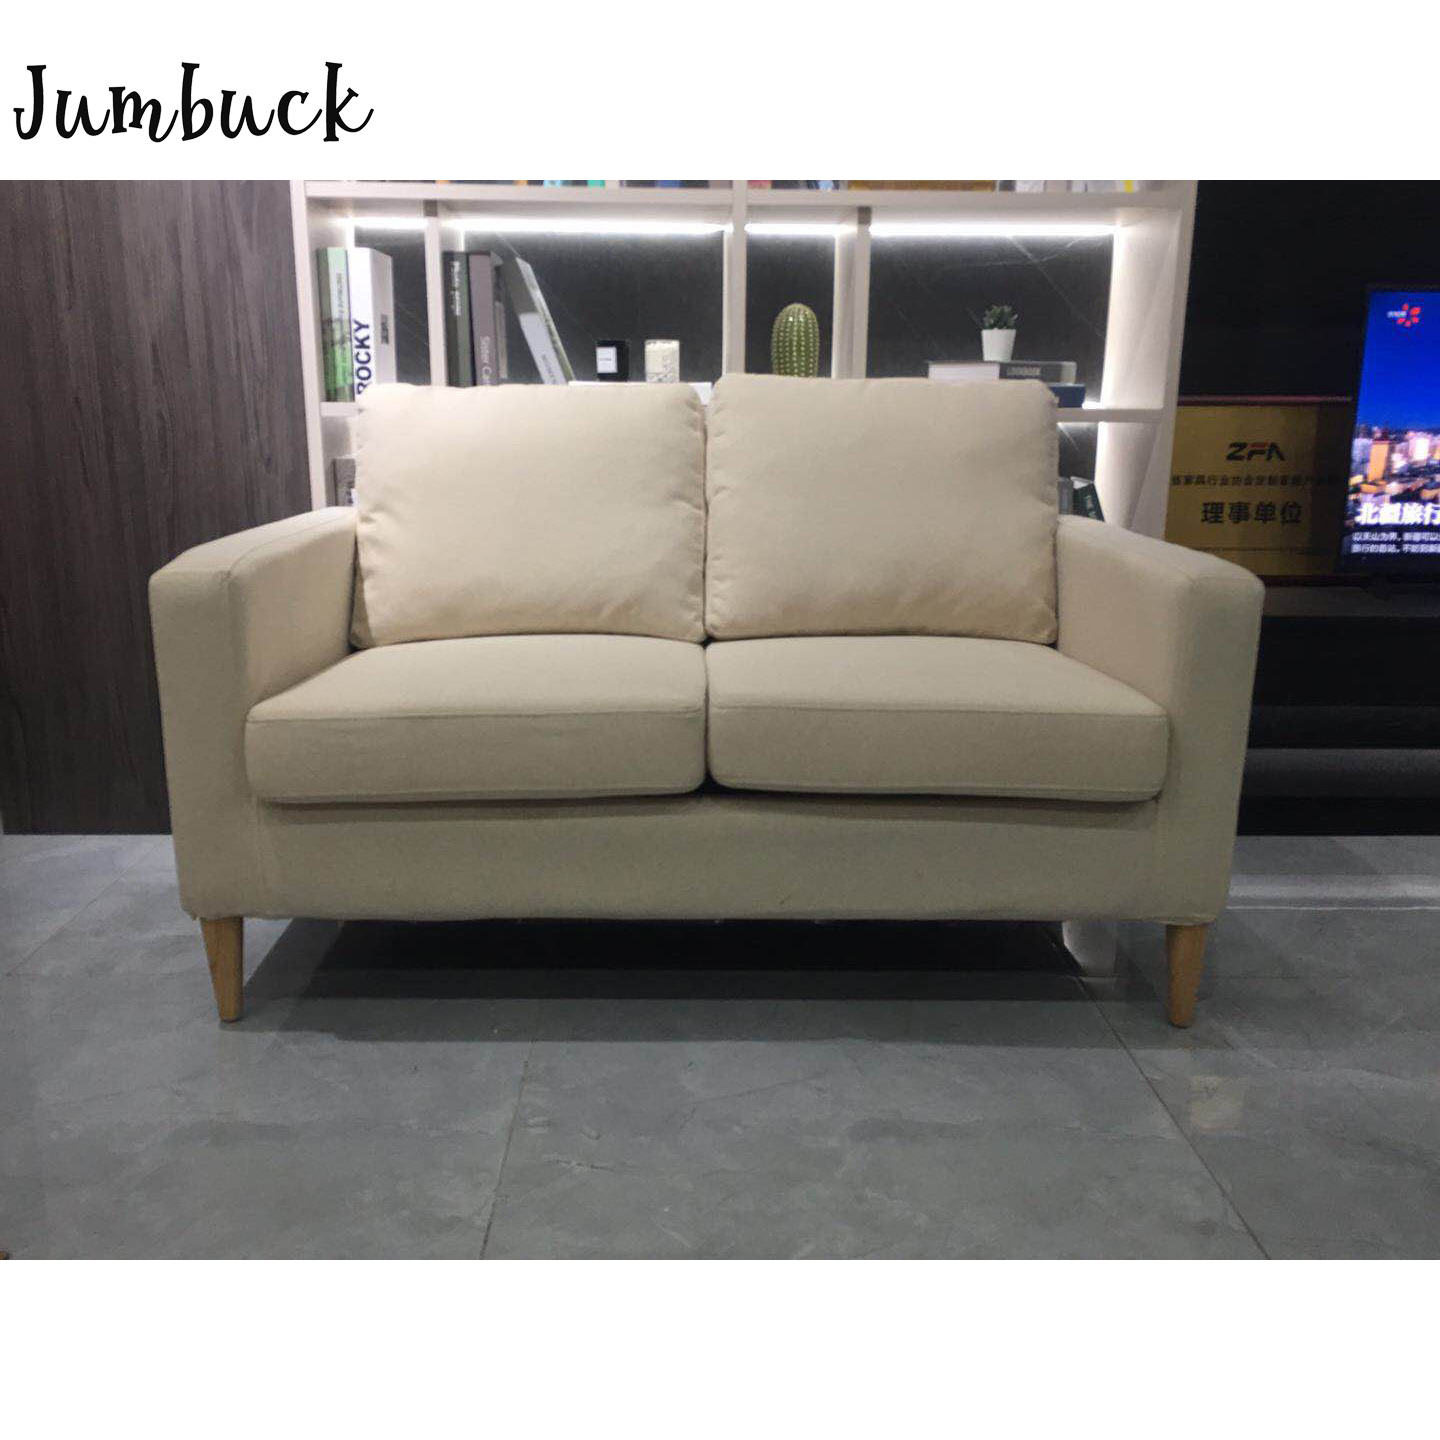 Picture of: Flat Pack Sofas Flat Pack Sofas Suppliers And Manufacturers At Alibaba Com